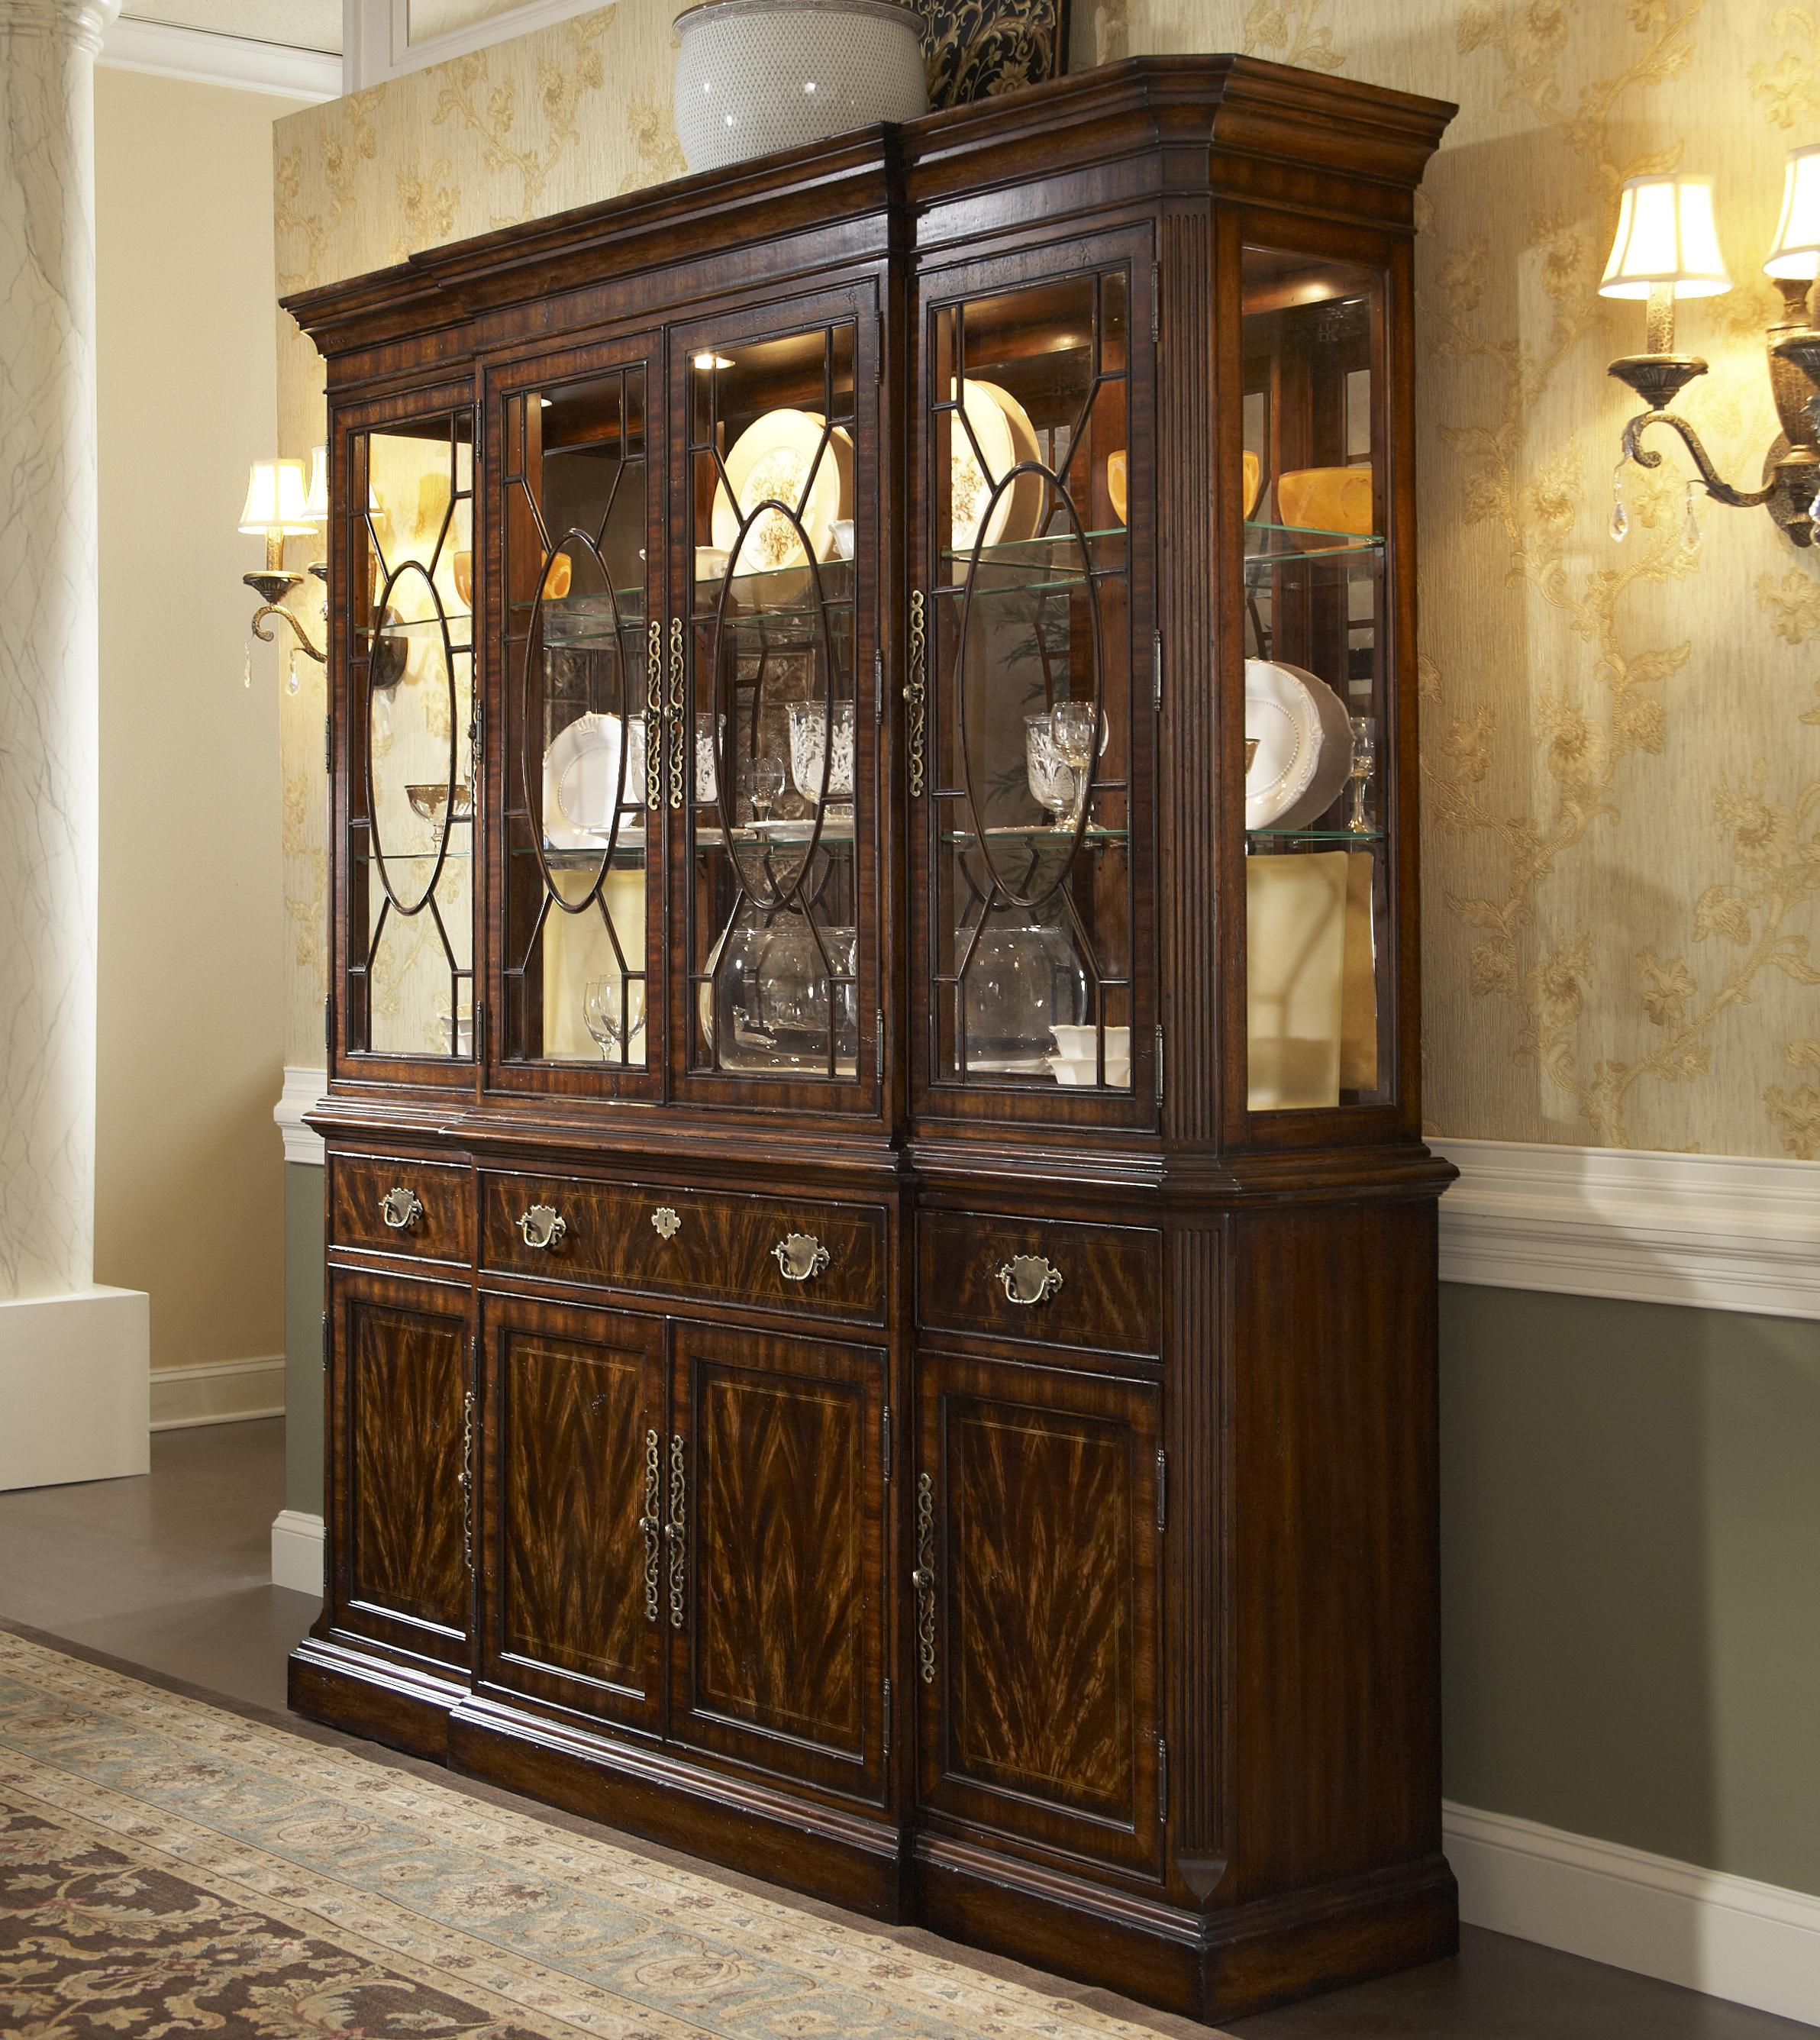 Breakfront china cabinet by fine furniture design wolf